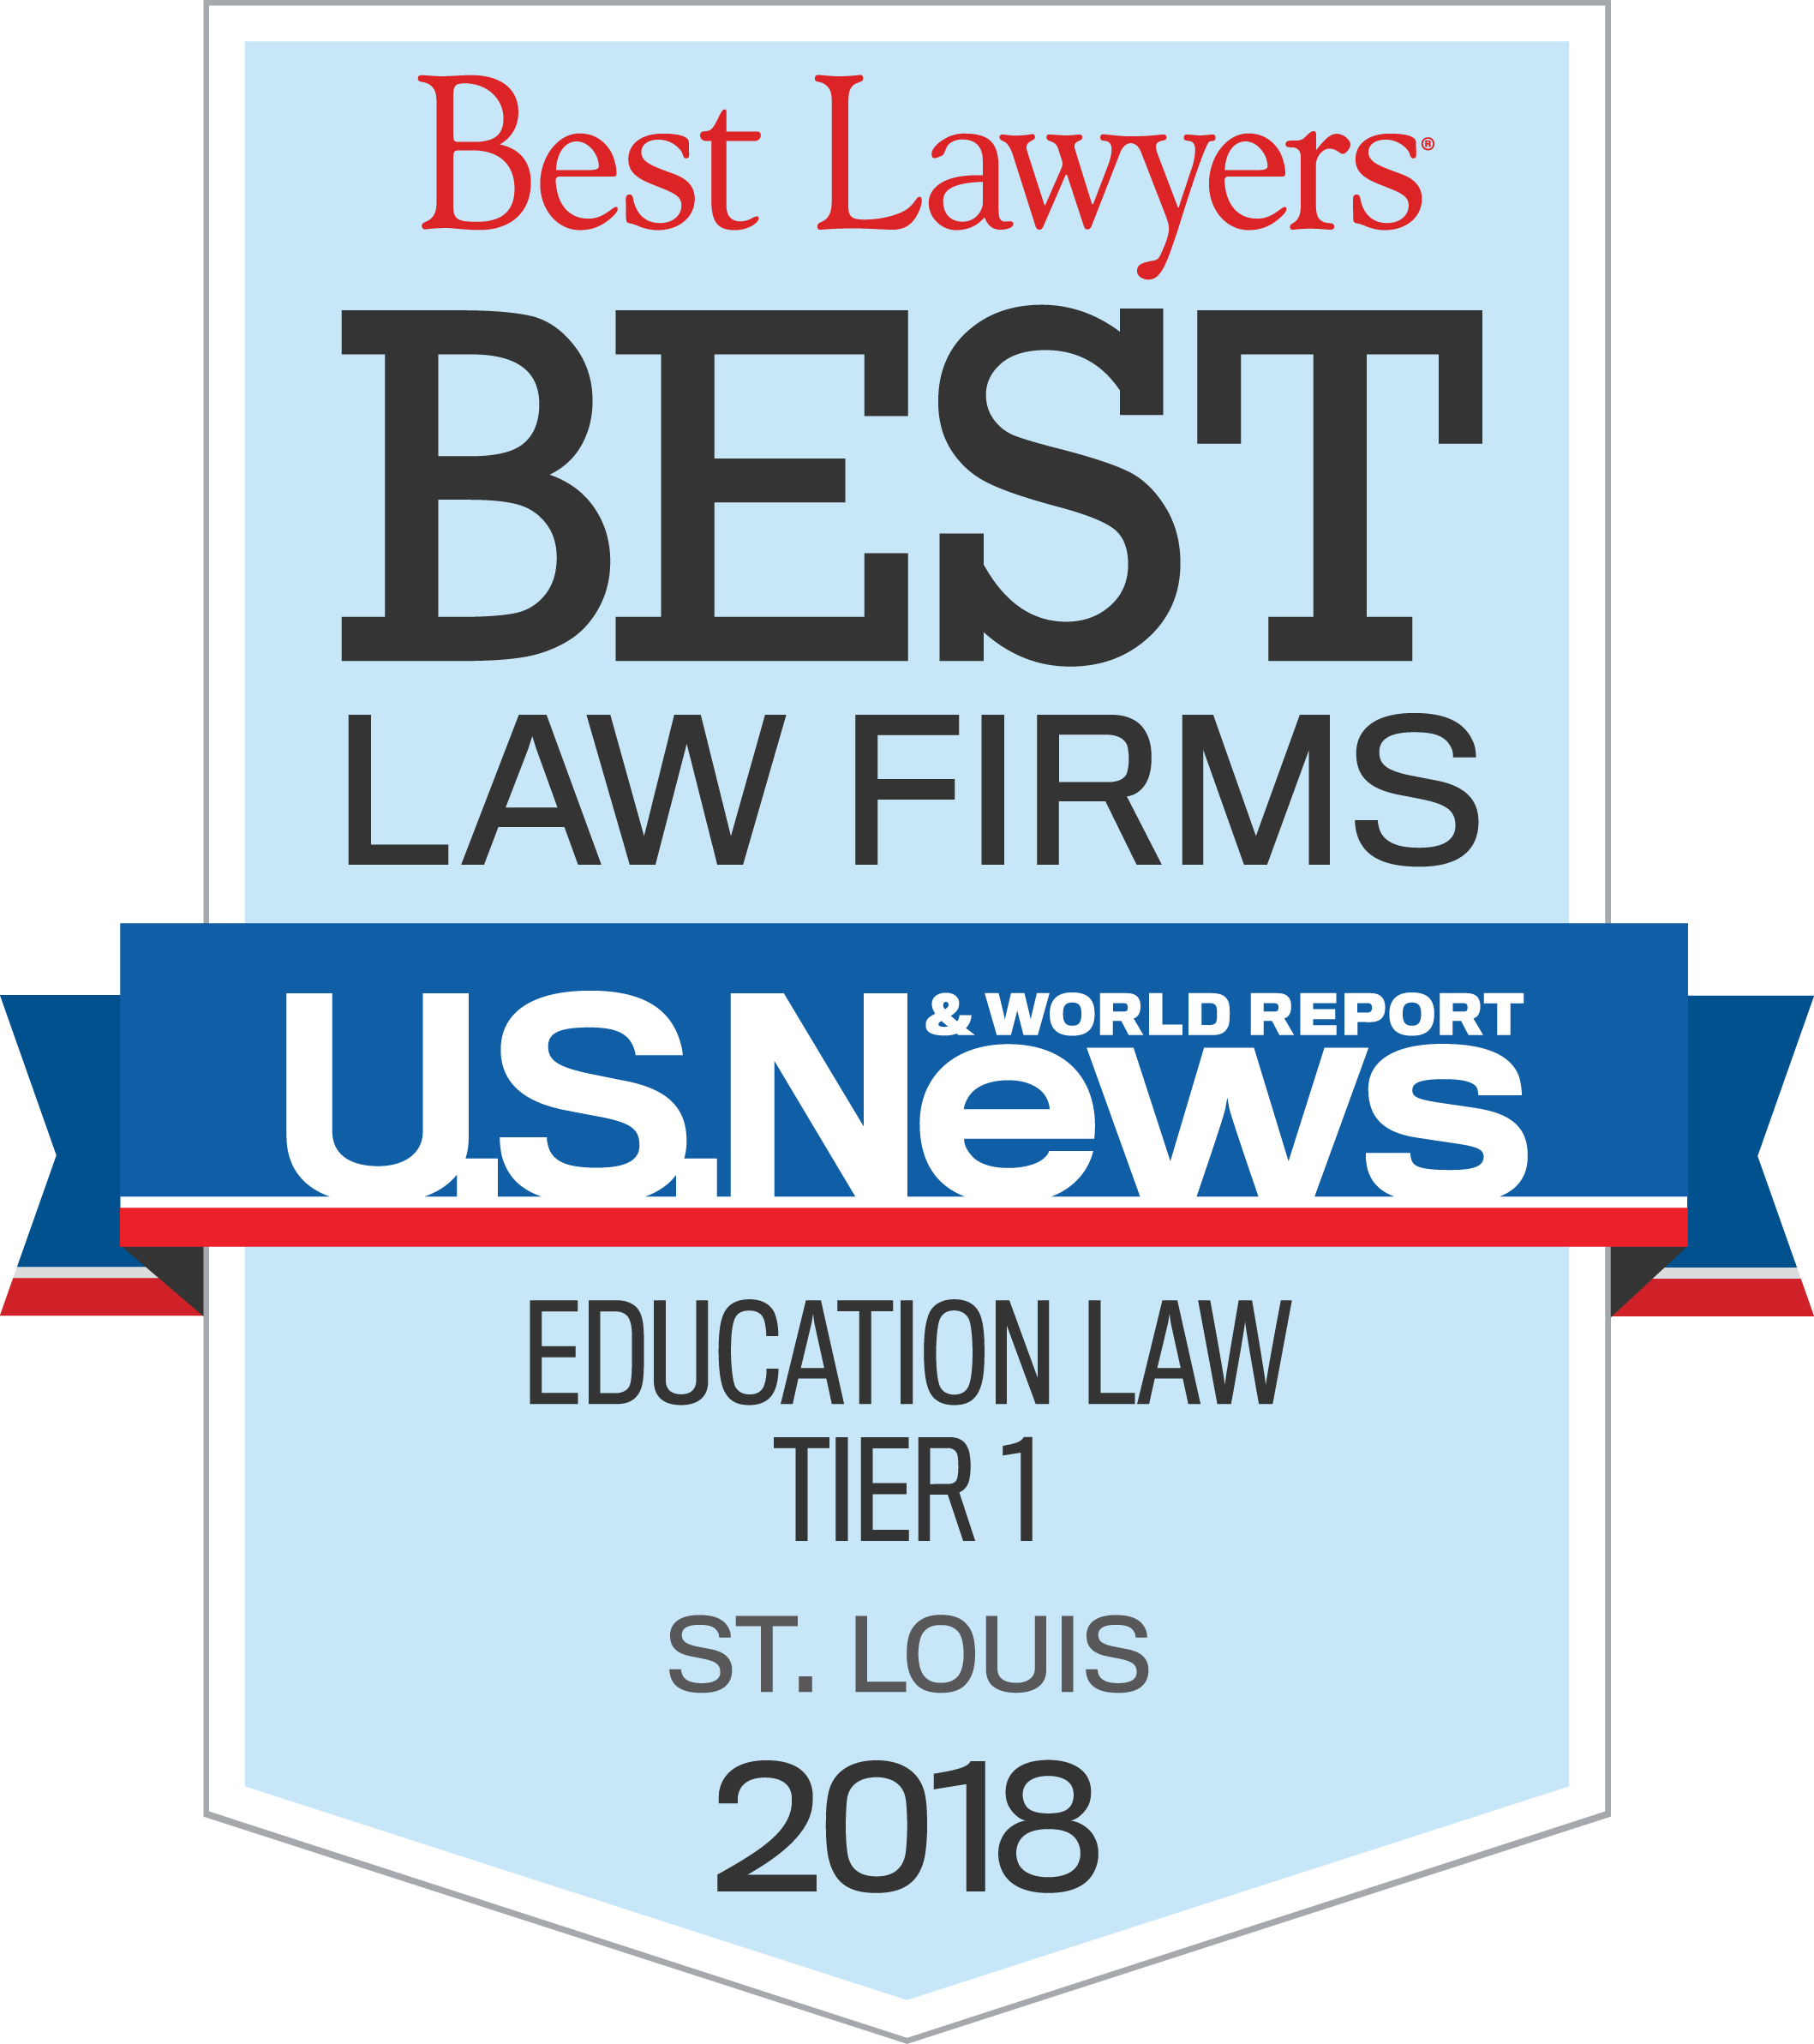 2018 Best Law Firms Announced – Mickes O'Toole, LLC